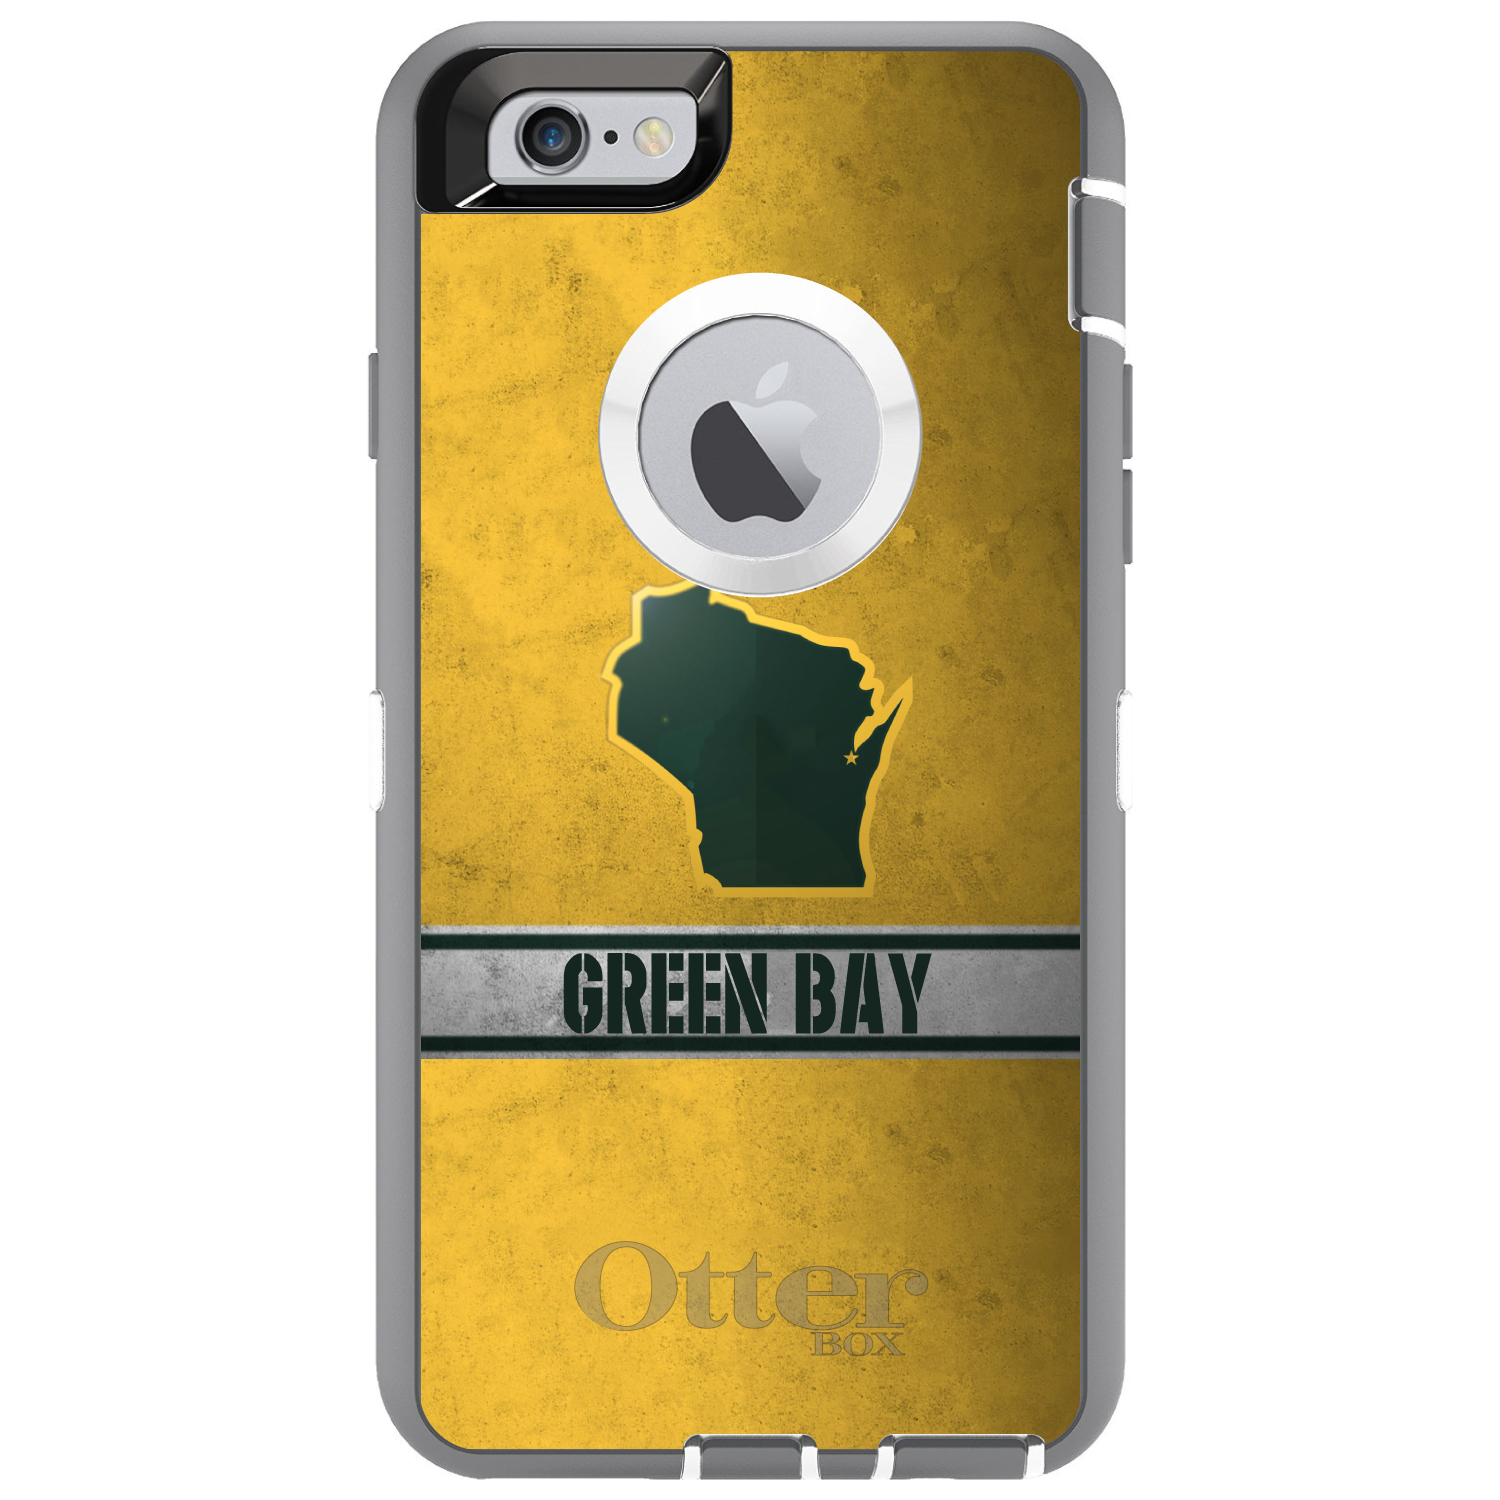 "DistinctInk™ Custom Grey OtterBox Defender Series Case for Apple iPhone 6 / 6S (4.7"" Screen) - Green Bay Wisconsin"